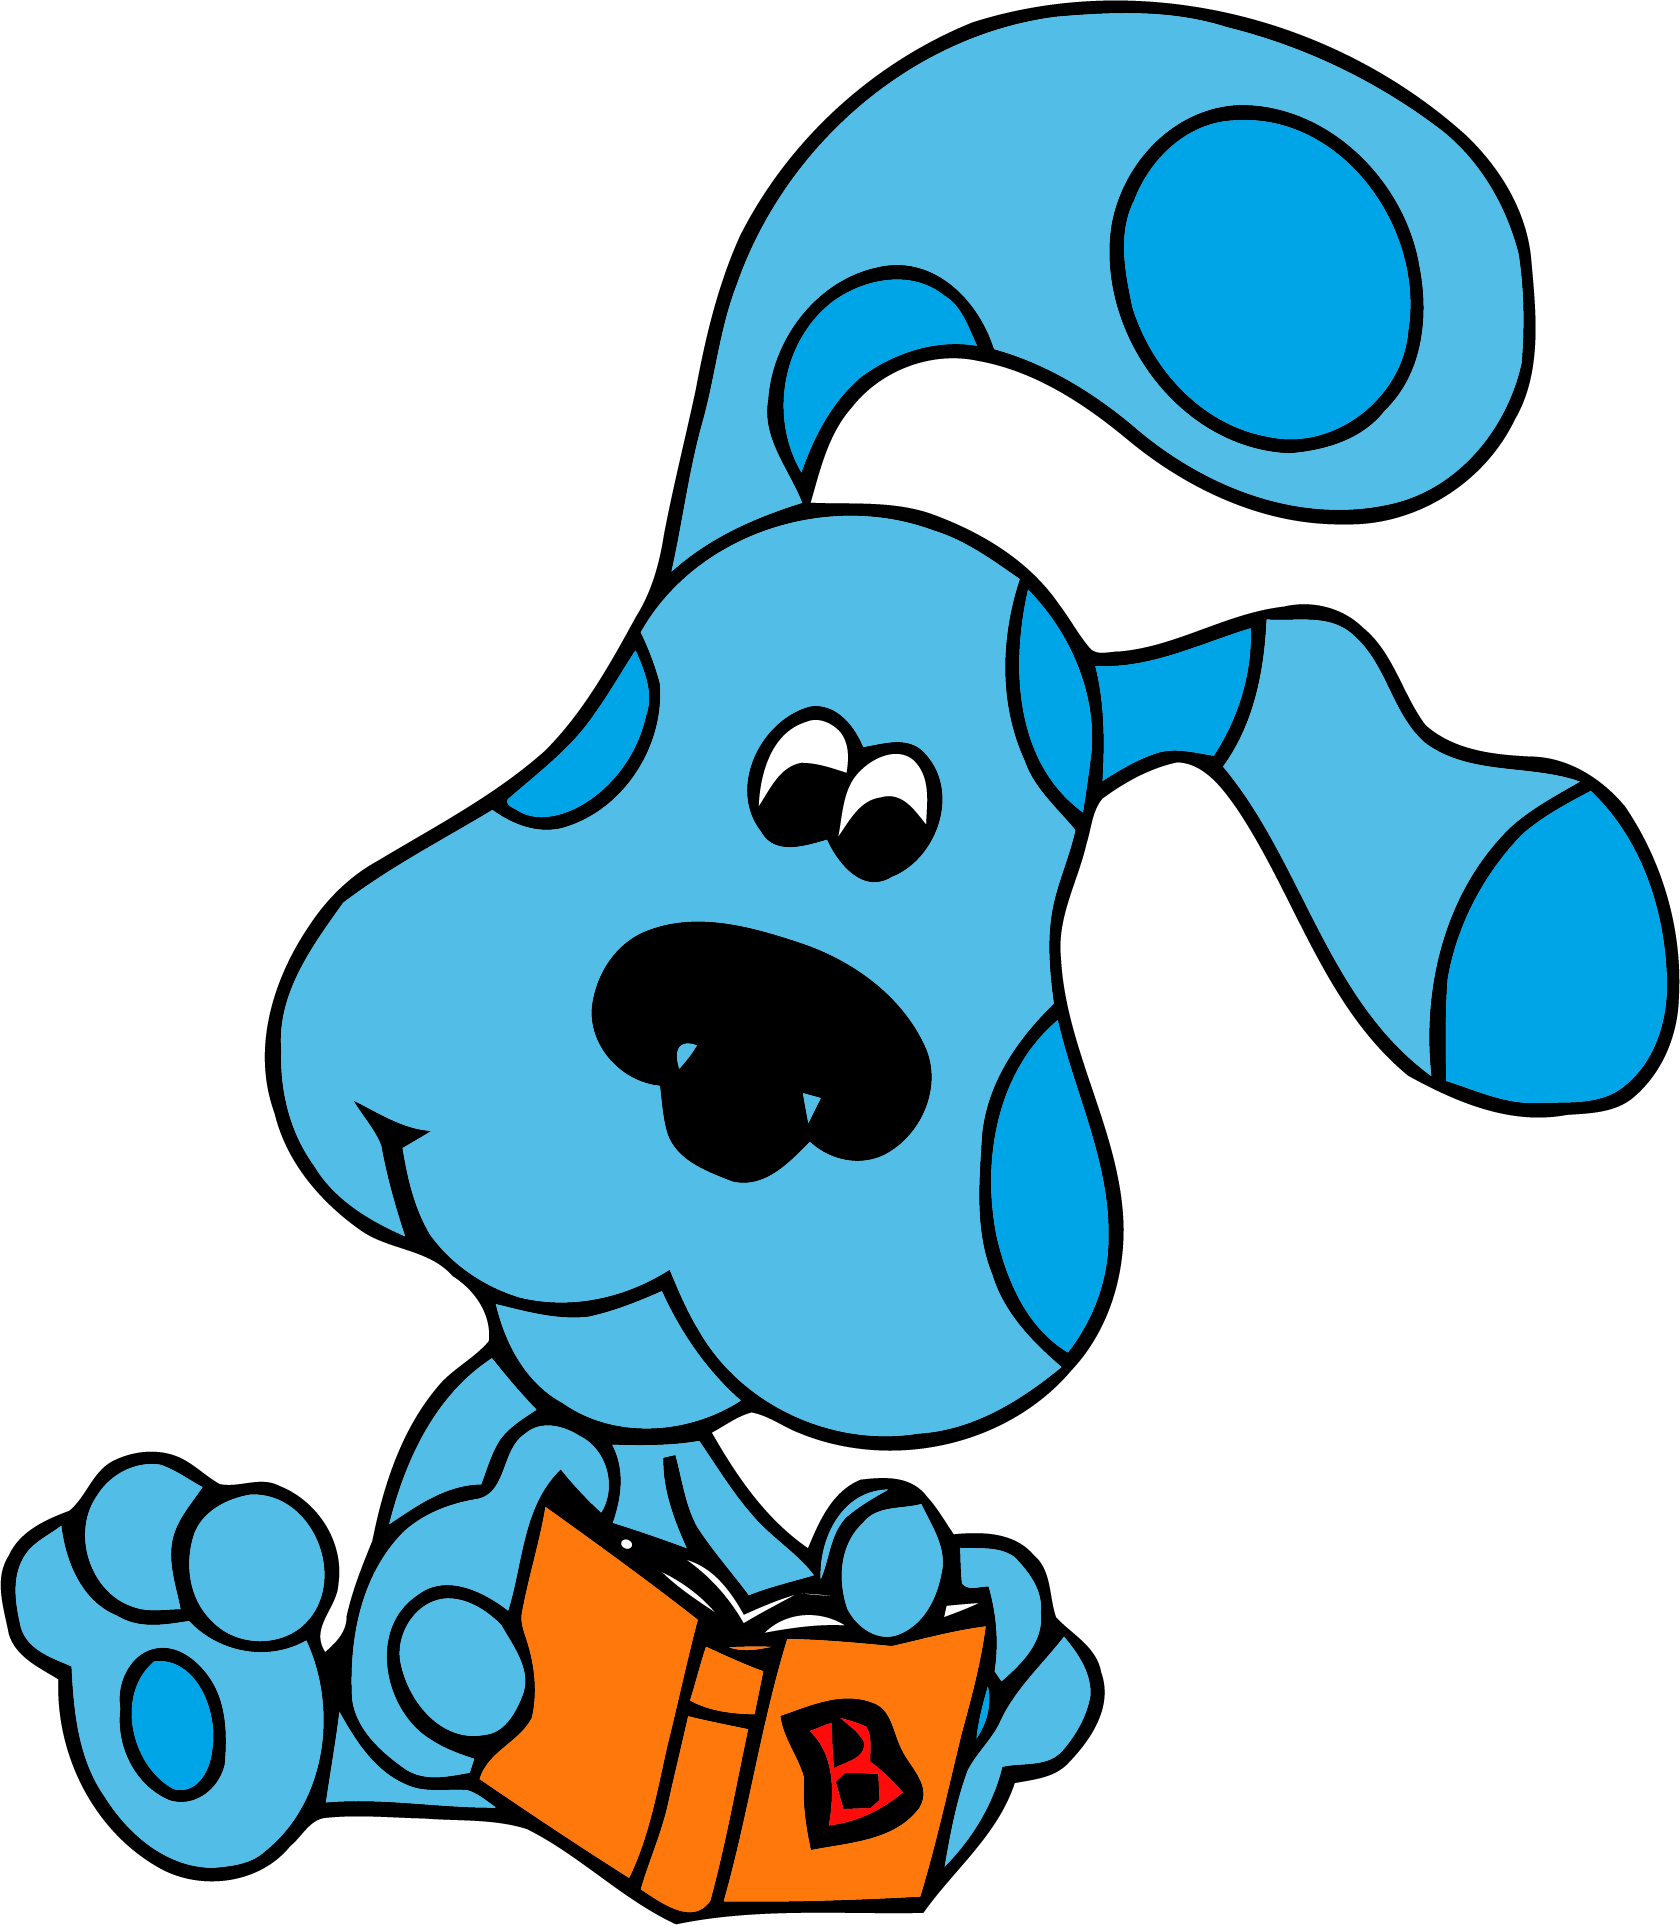 Book clipart blue clip art royalty free library Blue's Clues Clip Book Clipart Png - Clipartly.com clip art royalty free library